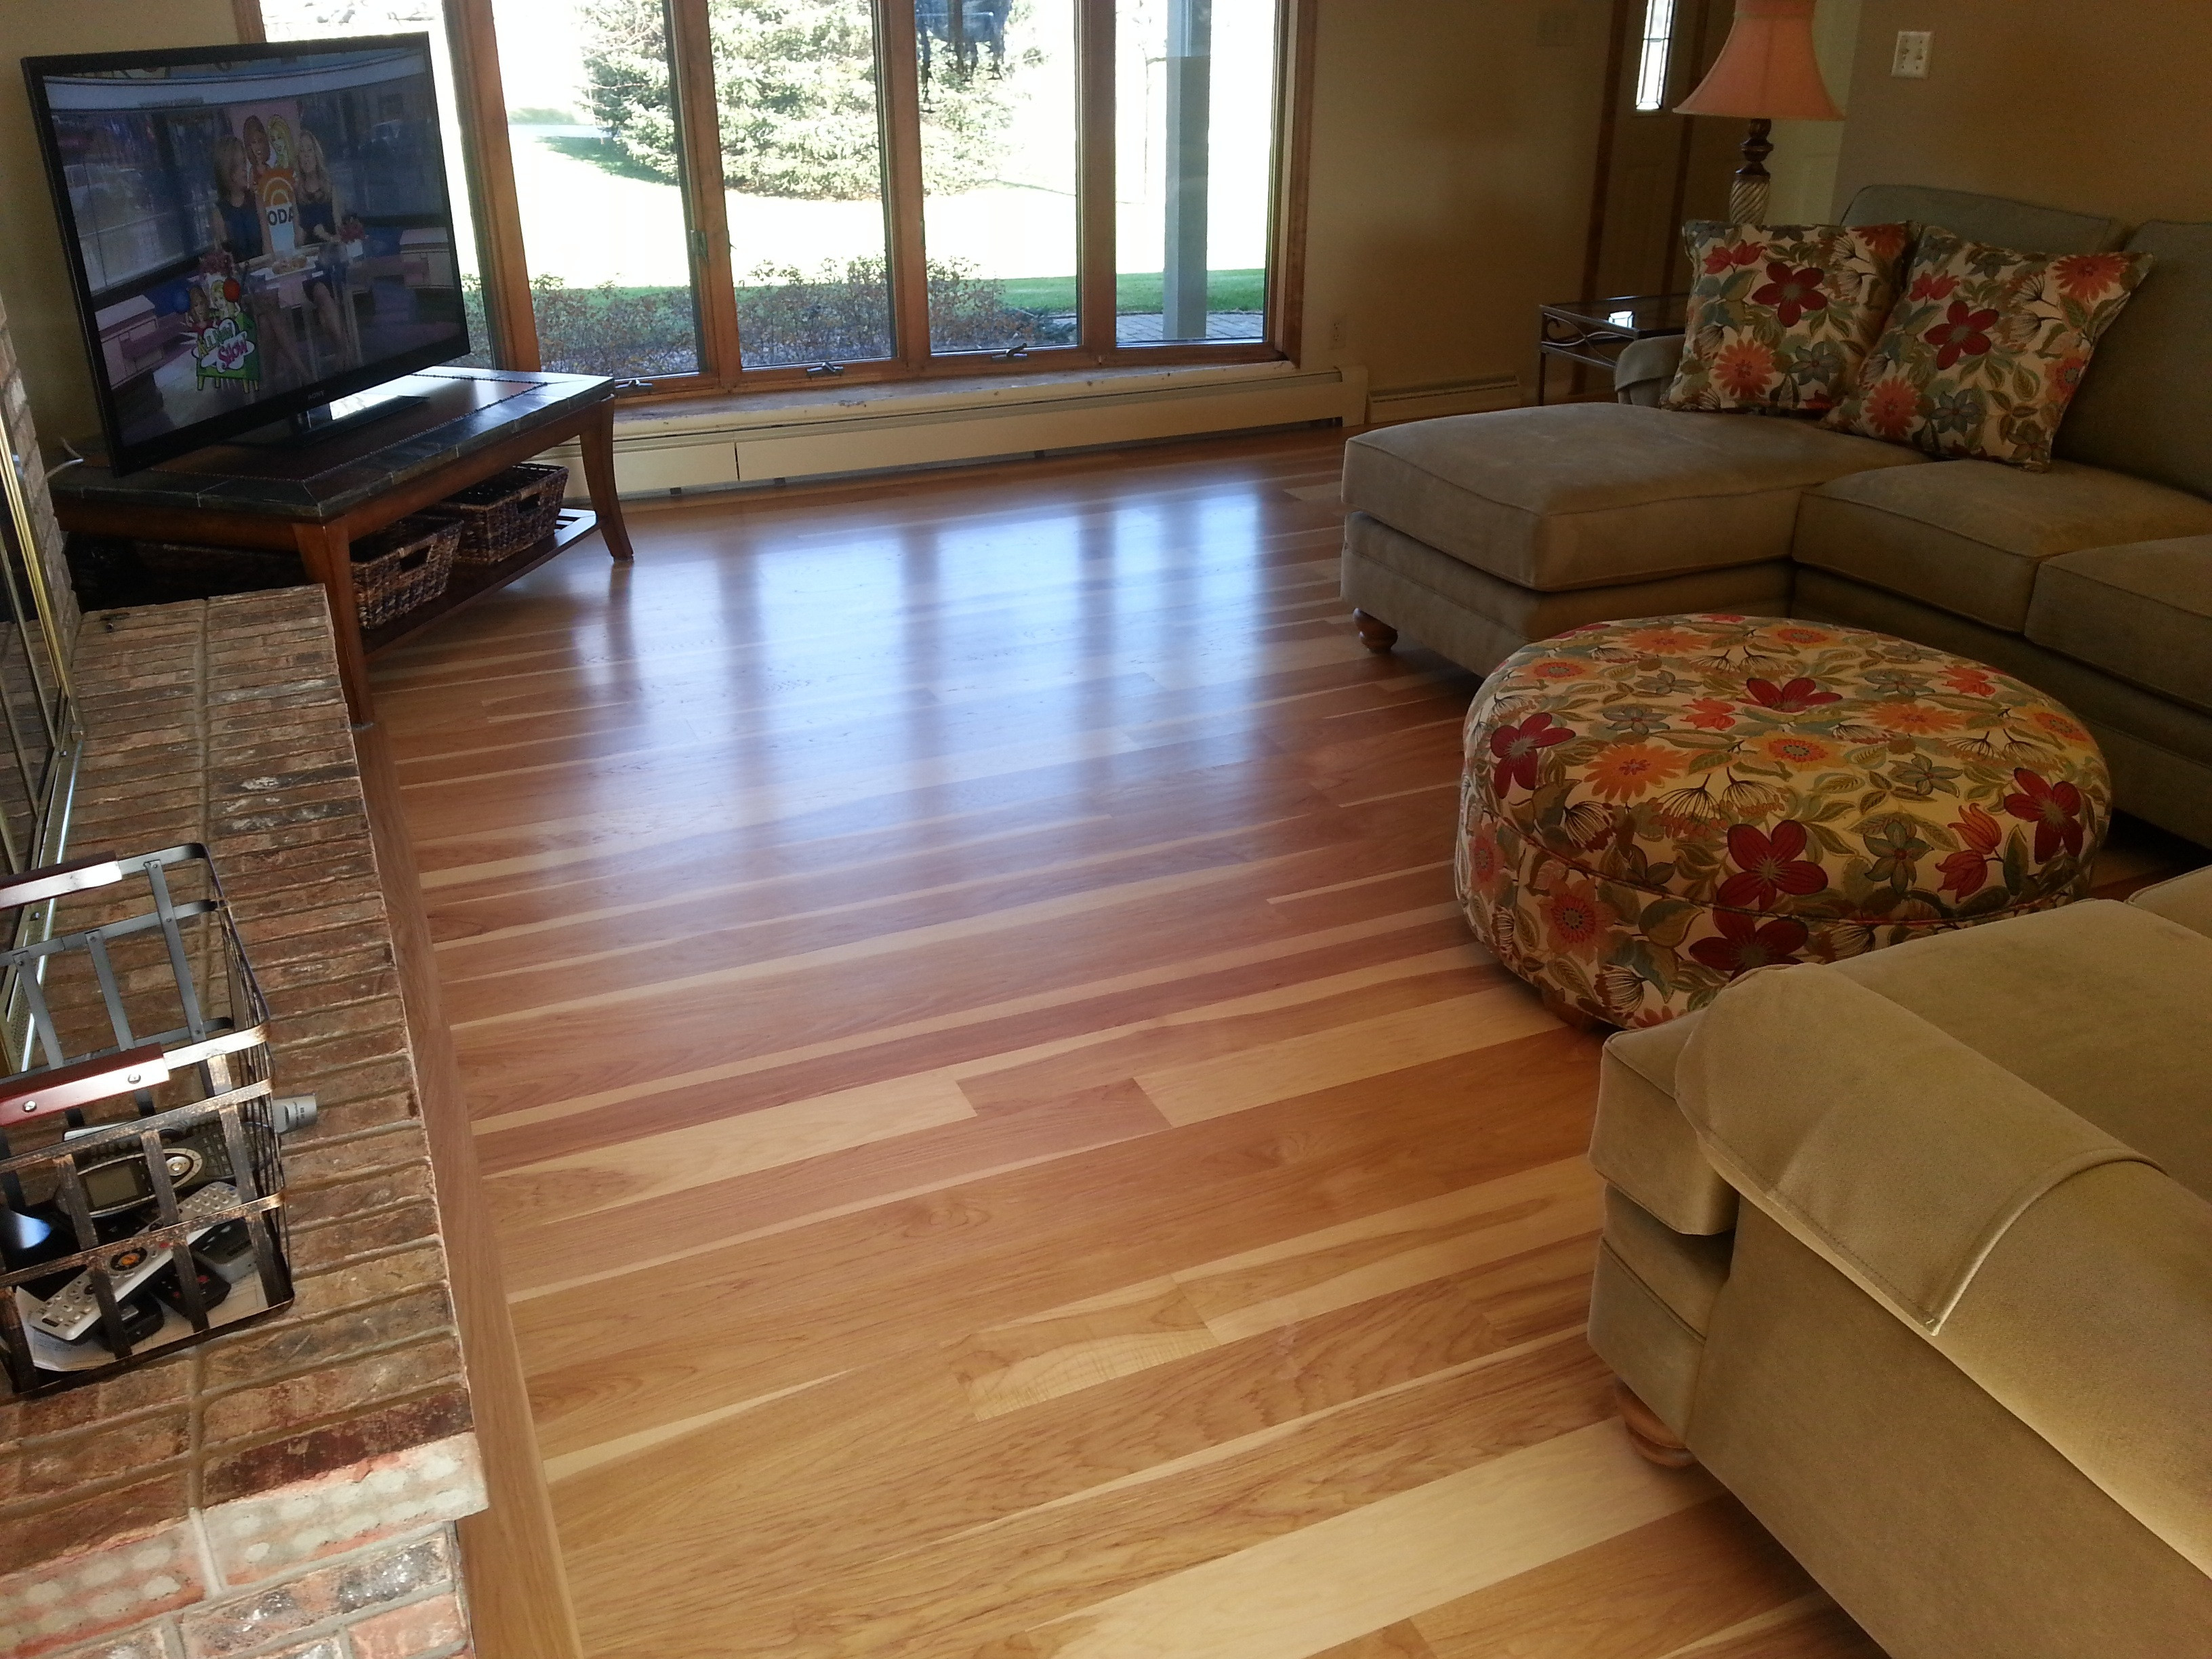 hickory engineered hardwood flooring pros and cons of 33 new wide plank engineered wood flooring images flooring design for wide plank engineered wood flooring fresh custom hickory wide plank hardwood floor milwaukee wi gallery of